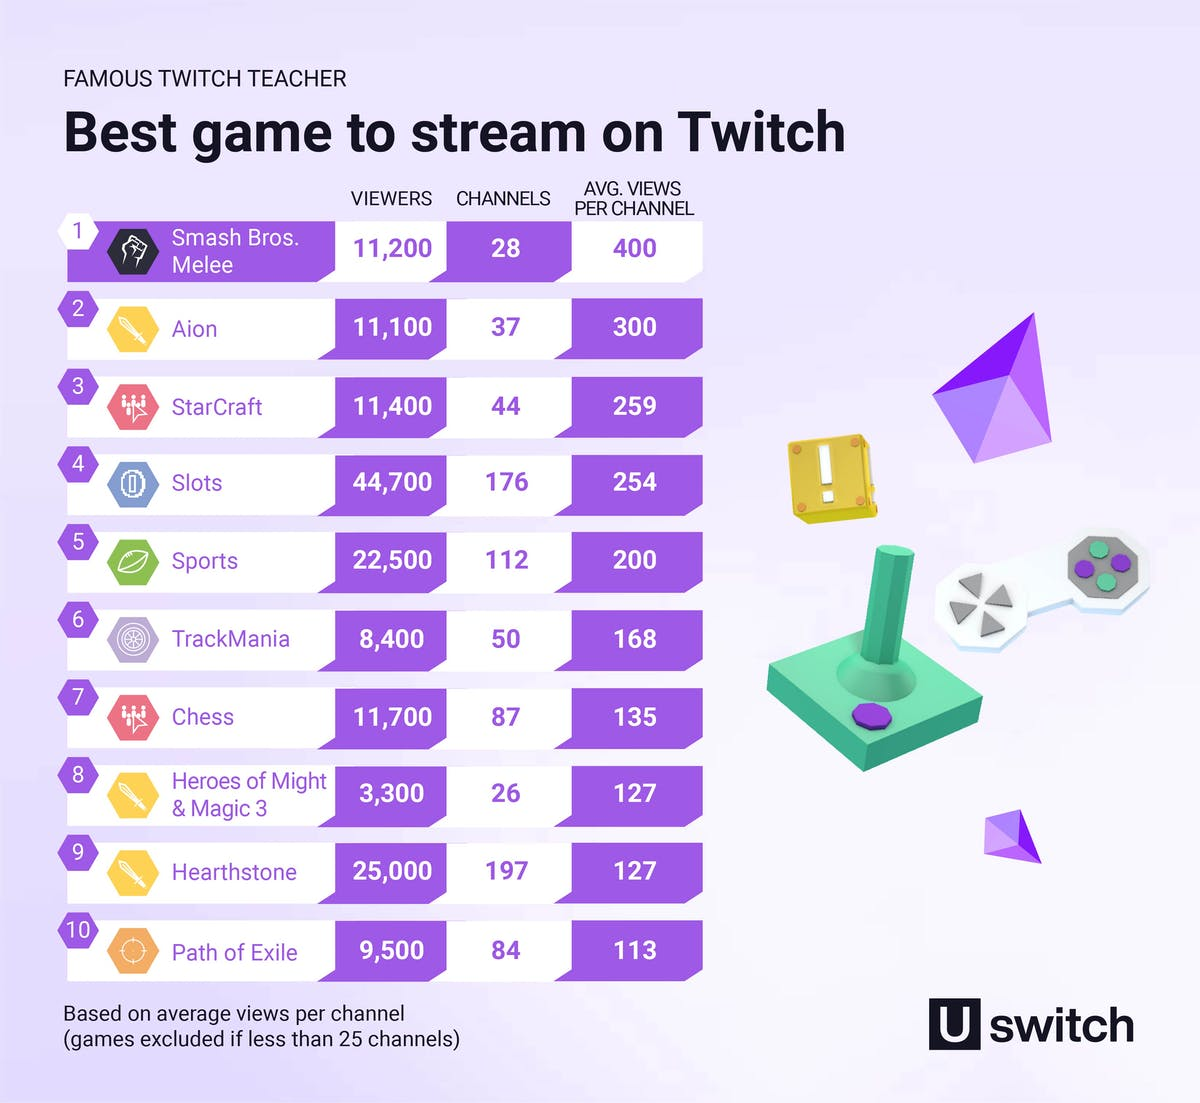 Best game to stream on Twitch table